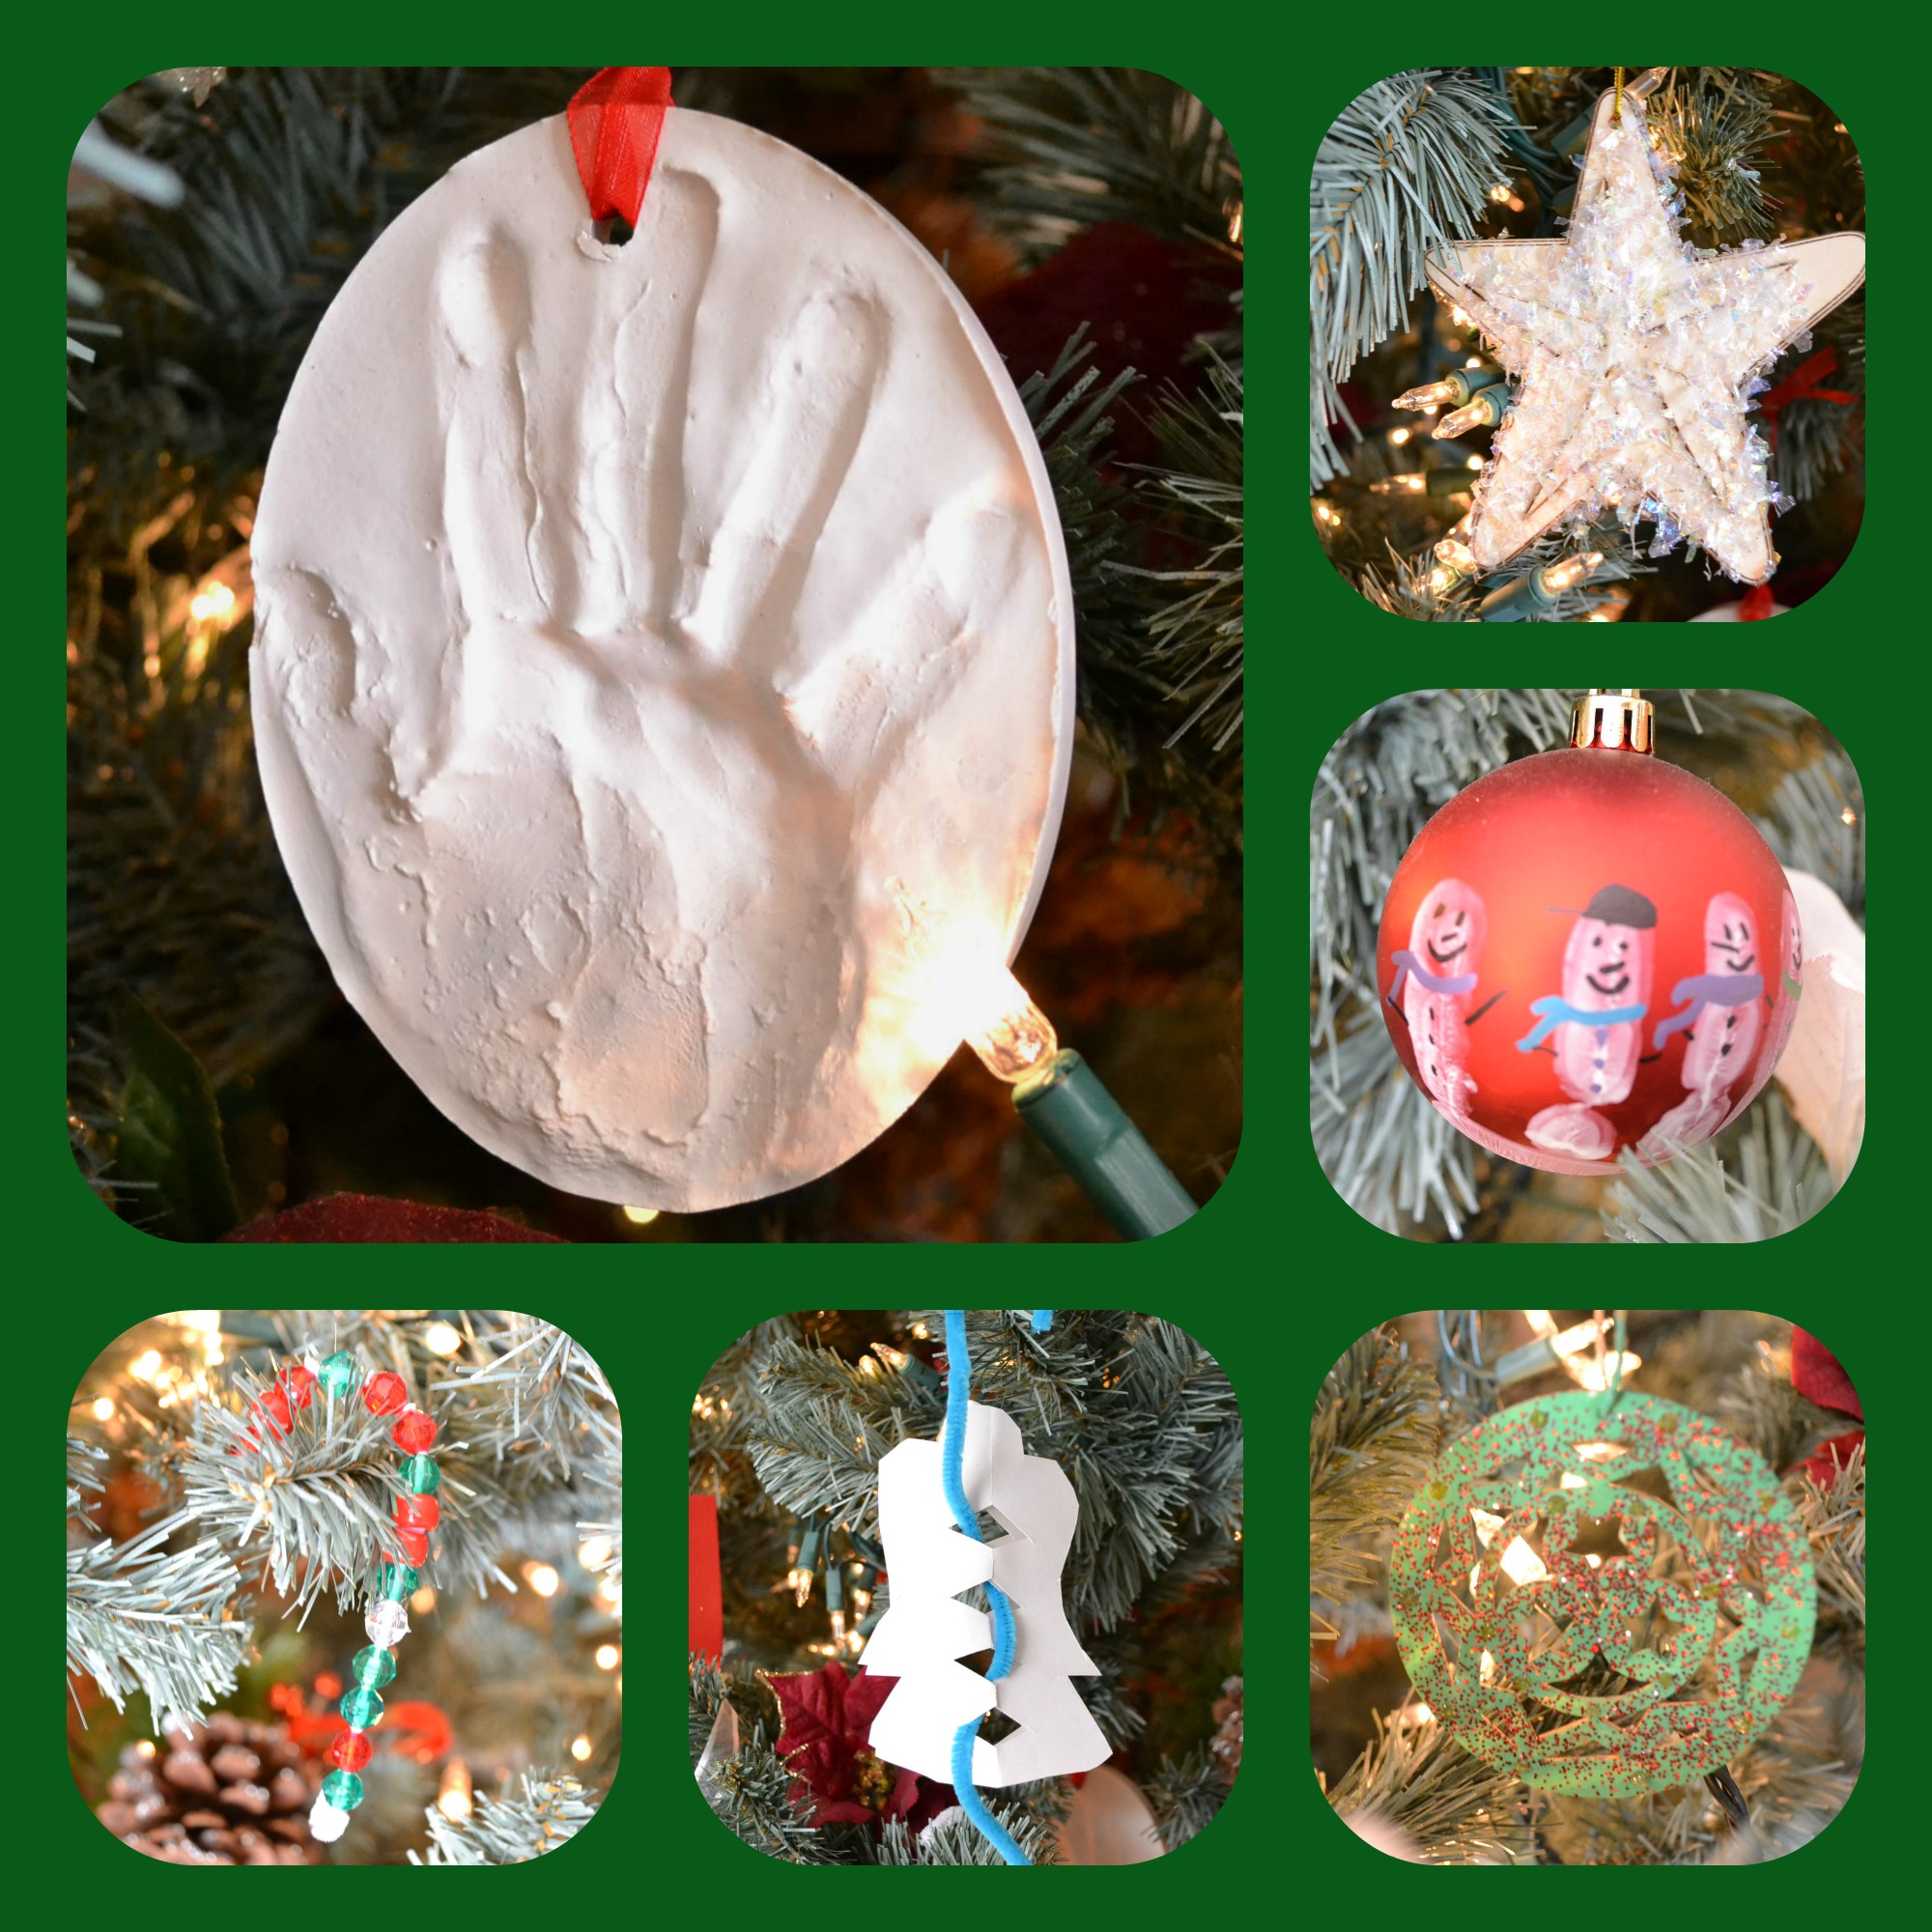 Christmas Ornaments Collage |Money Savvy Living